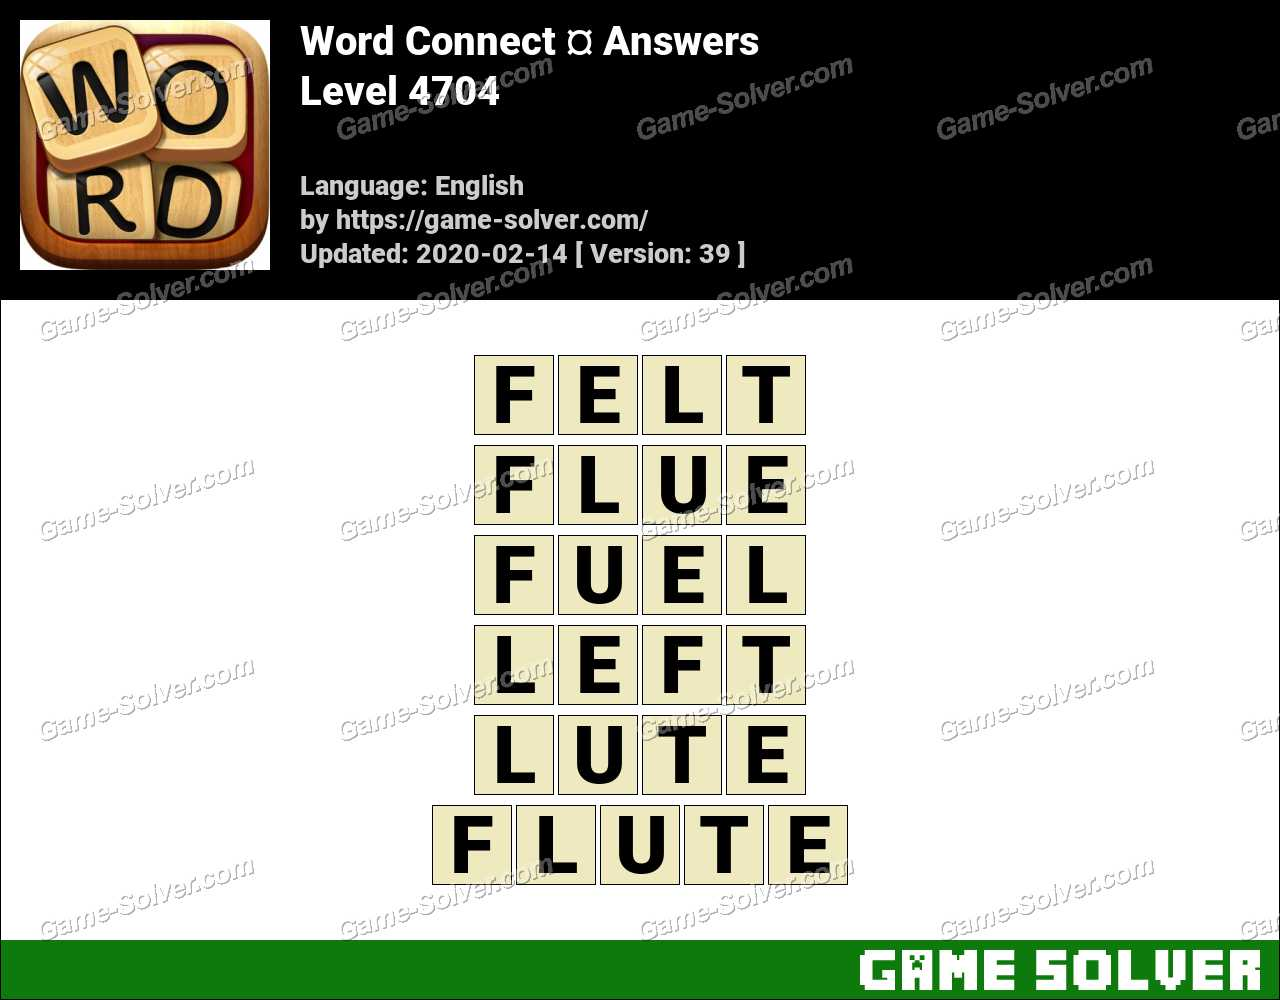 Word Connect Level 4704 Answers